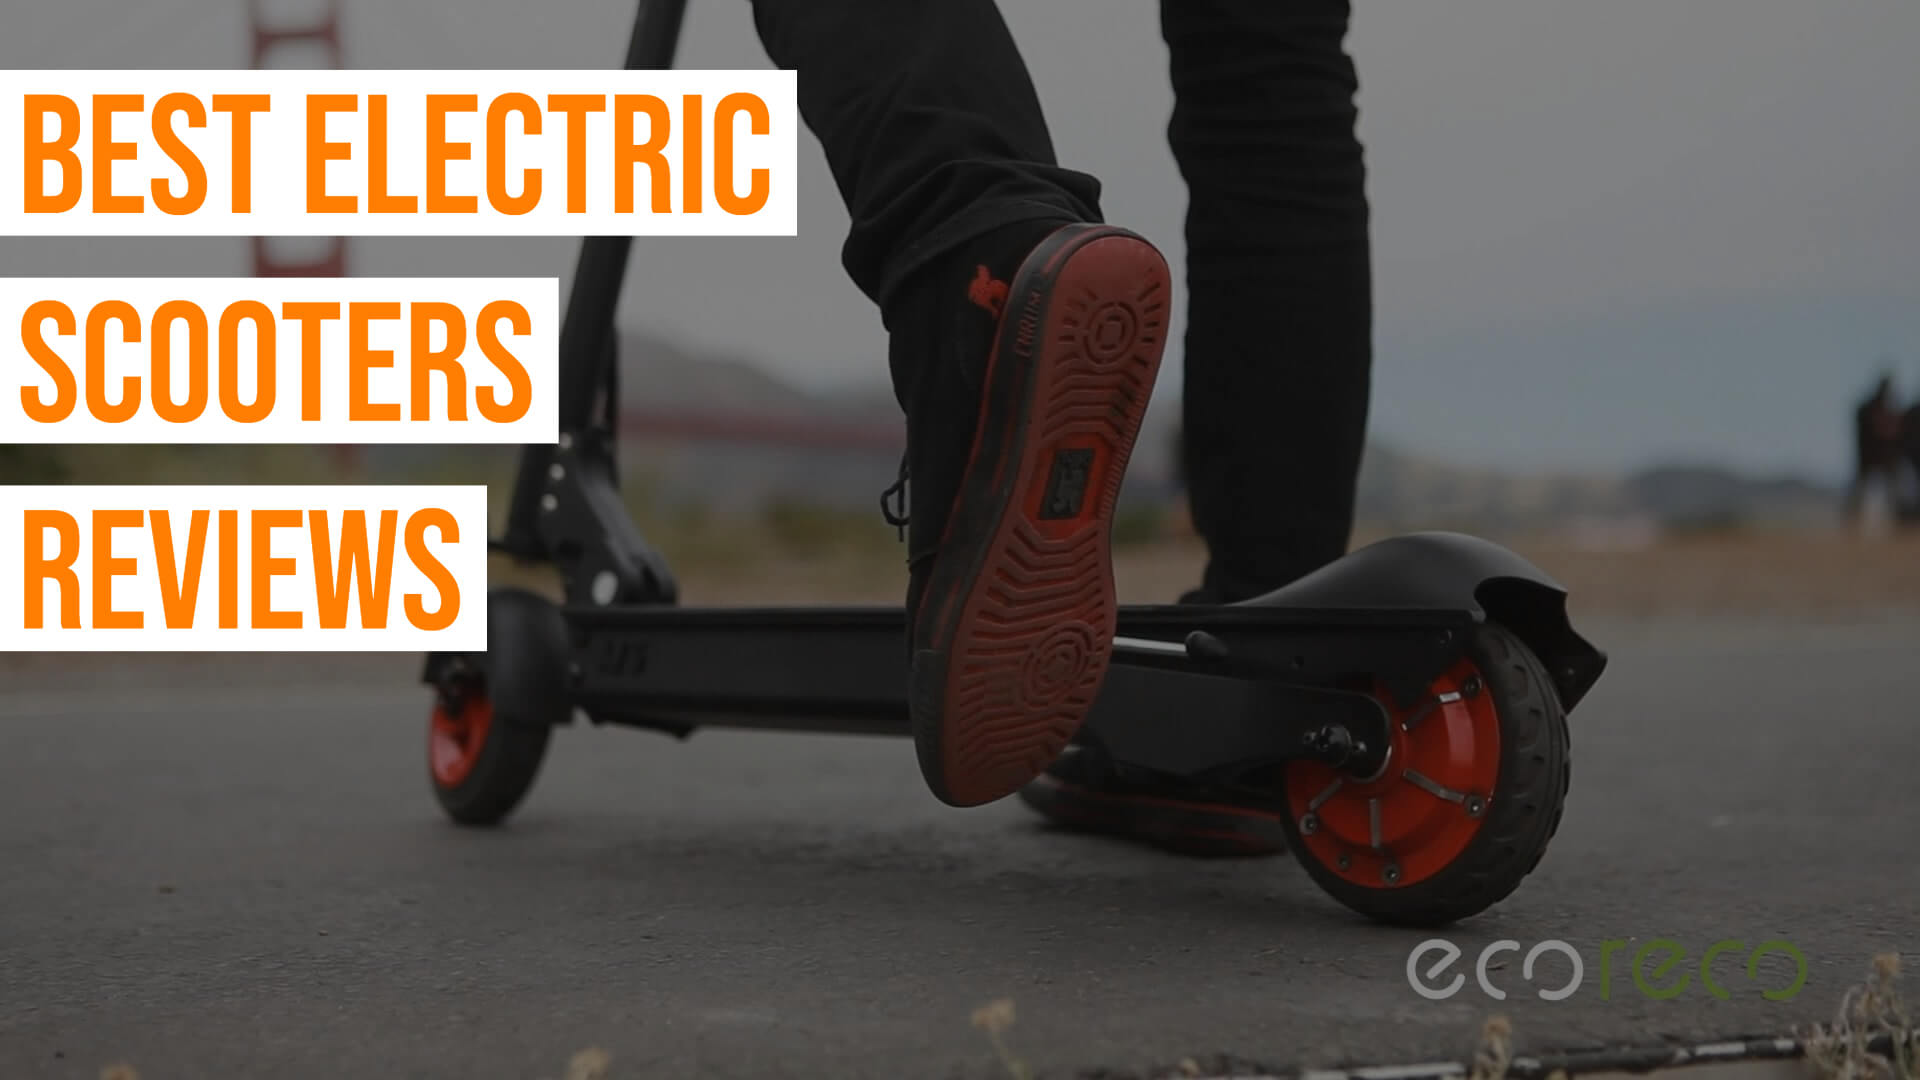 Best Electric Scooters Reviews